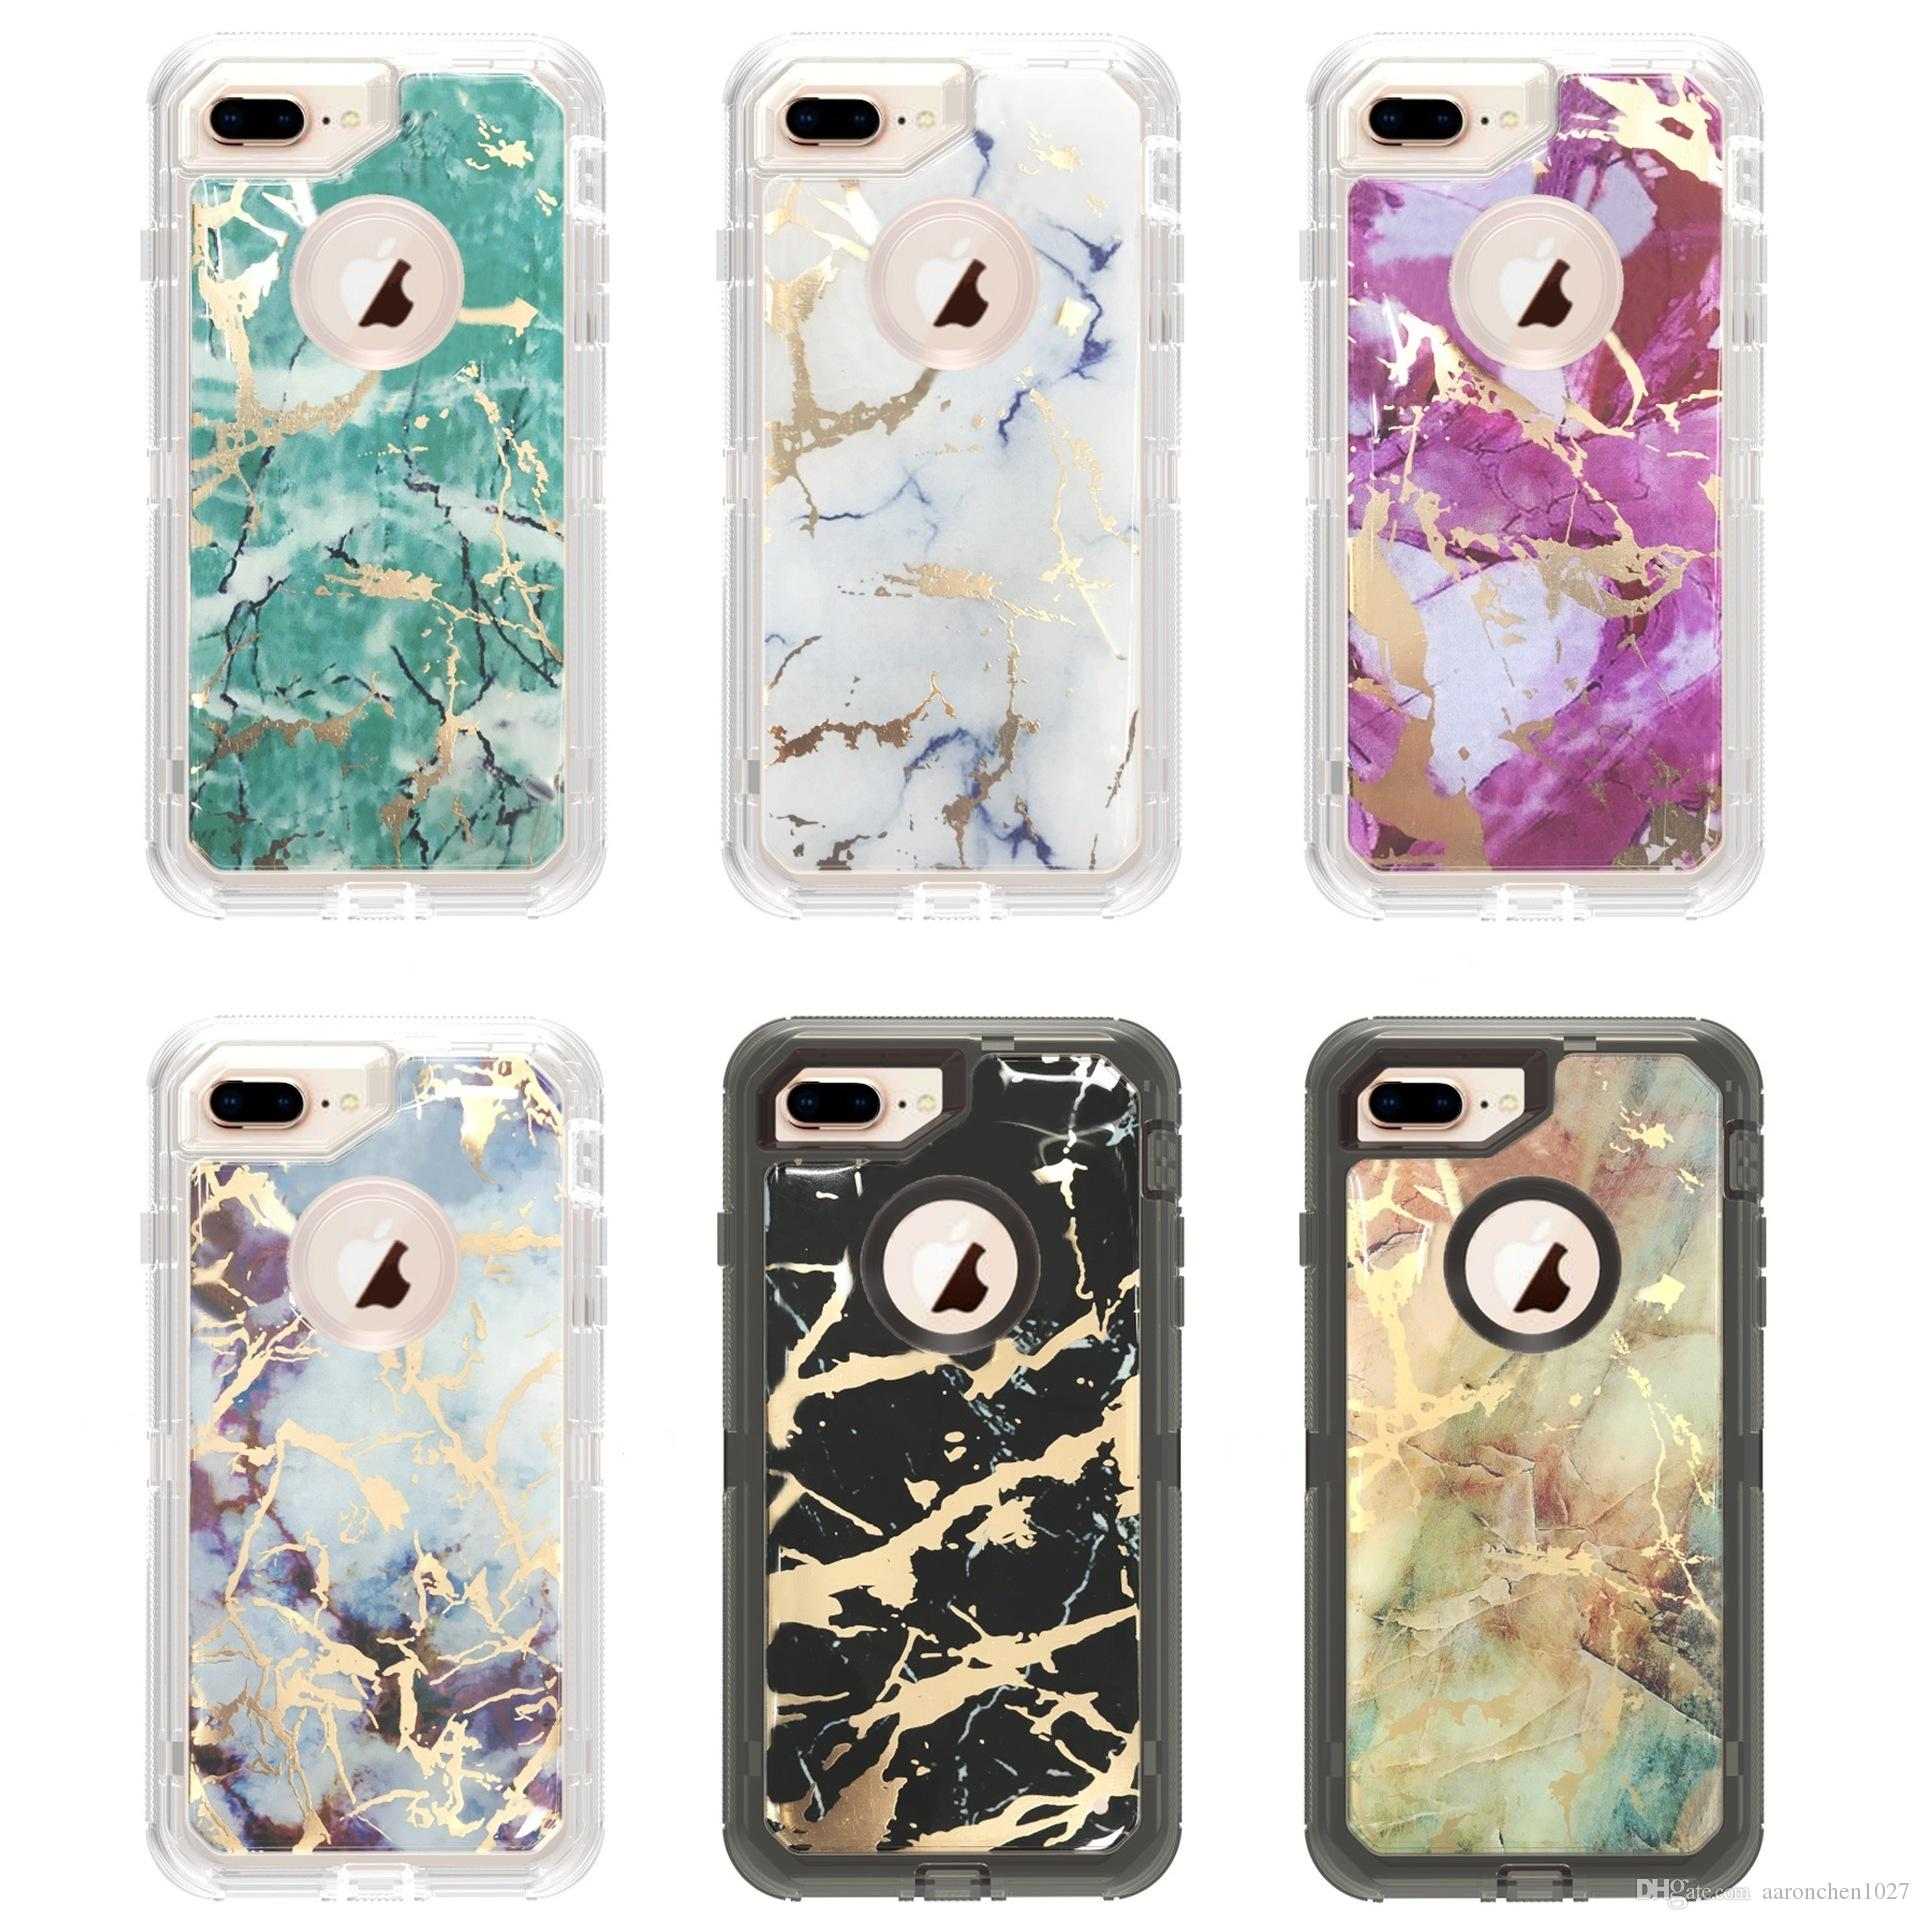 Defender Case For Iphone X XS XR Max Case Luxury Marble 3 in 1 Heavy Duty Shockproof Full Body Protective Case For Iphone 6 6s 7 8 Plus